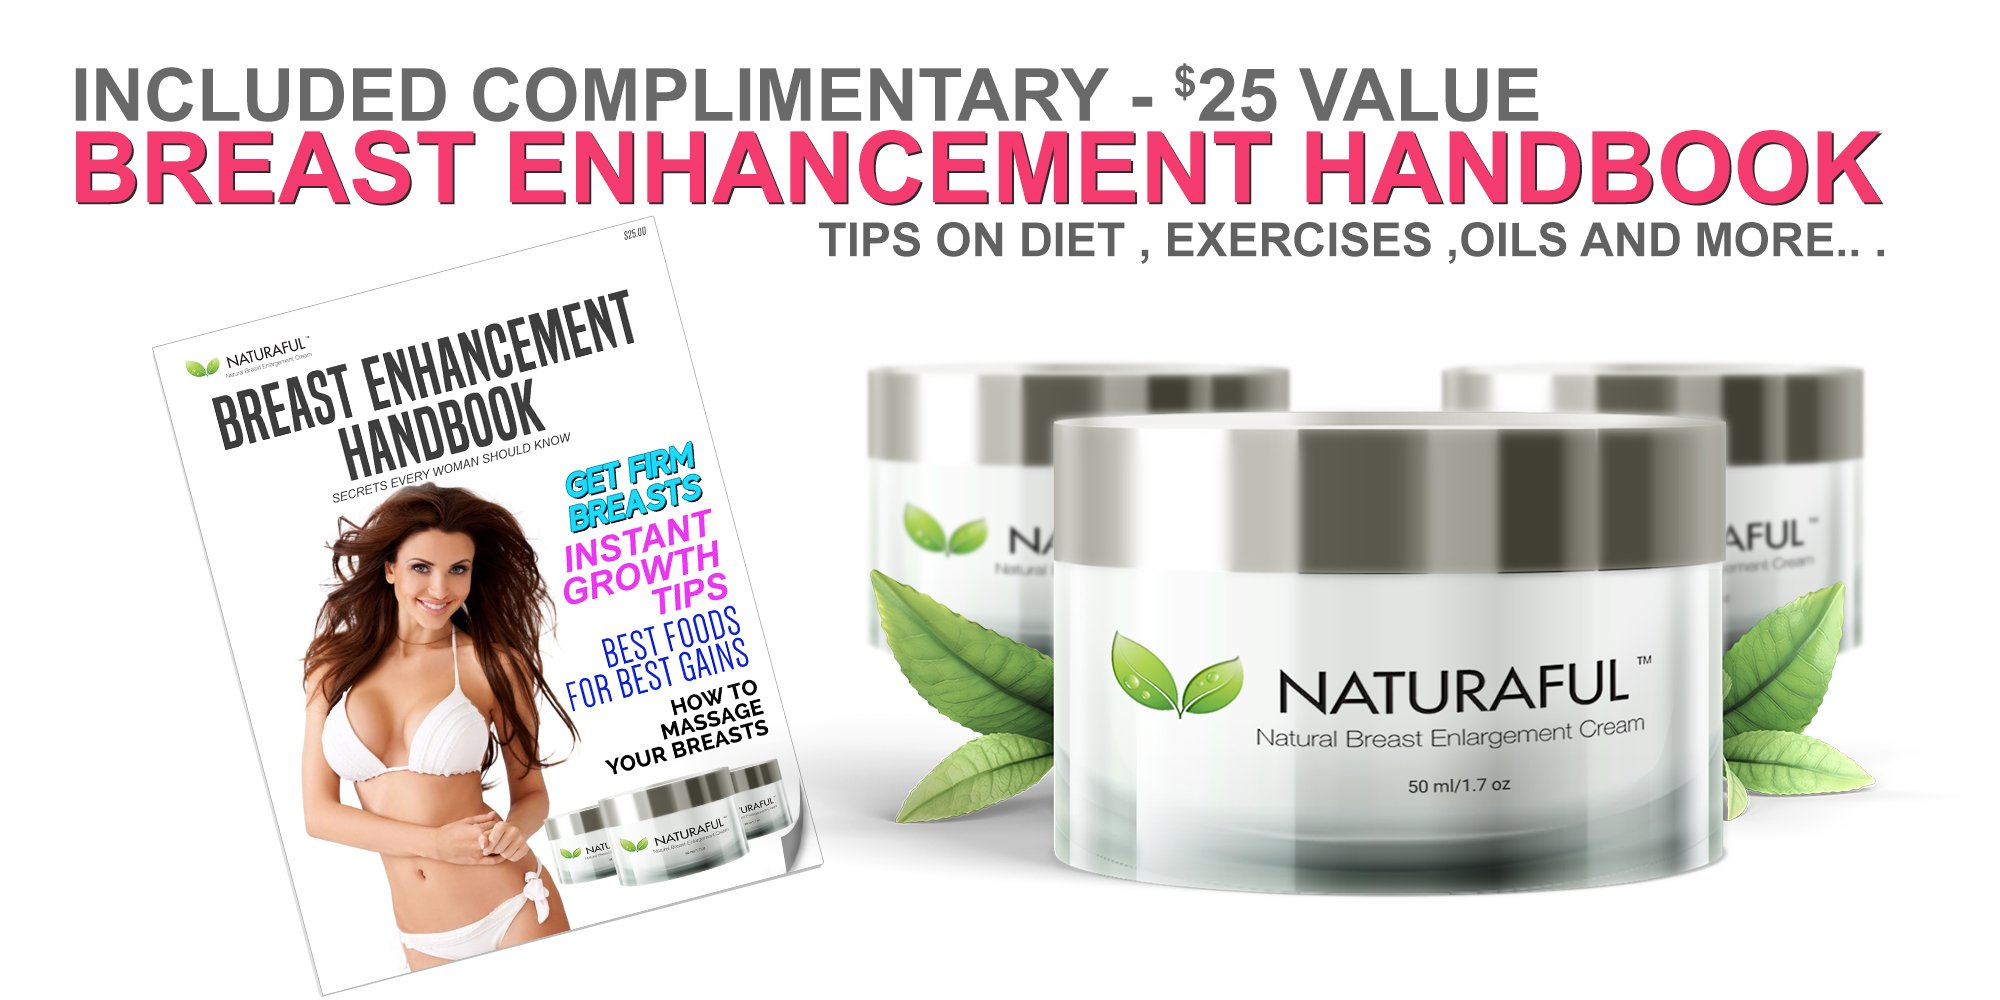 NATURAFUL - (5 JAR SUPPLY) TOP RATED Breast Enhancement Cream - Natural Breast Enlargement, Firming and Lifting Cream | Hormone Balancing, Made from Plant Extracts, Trusted by Over 100,000 Users by Naturaful (Image #5)